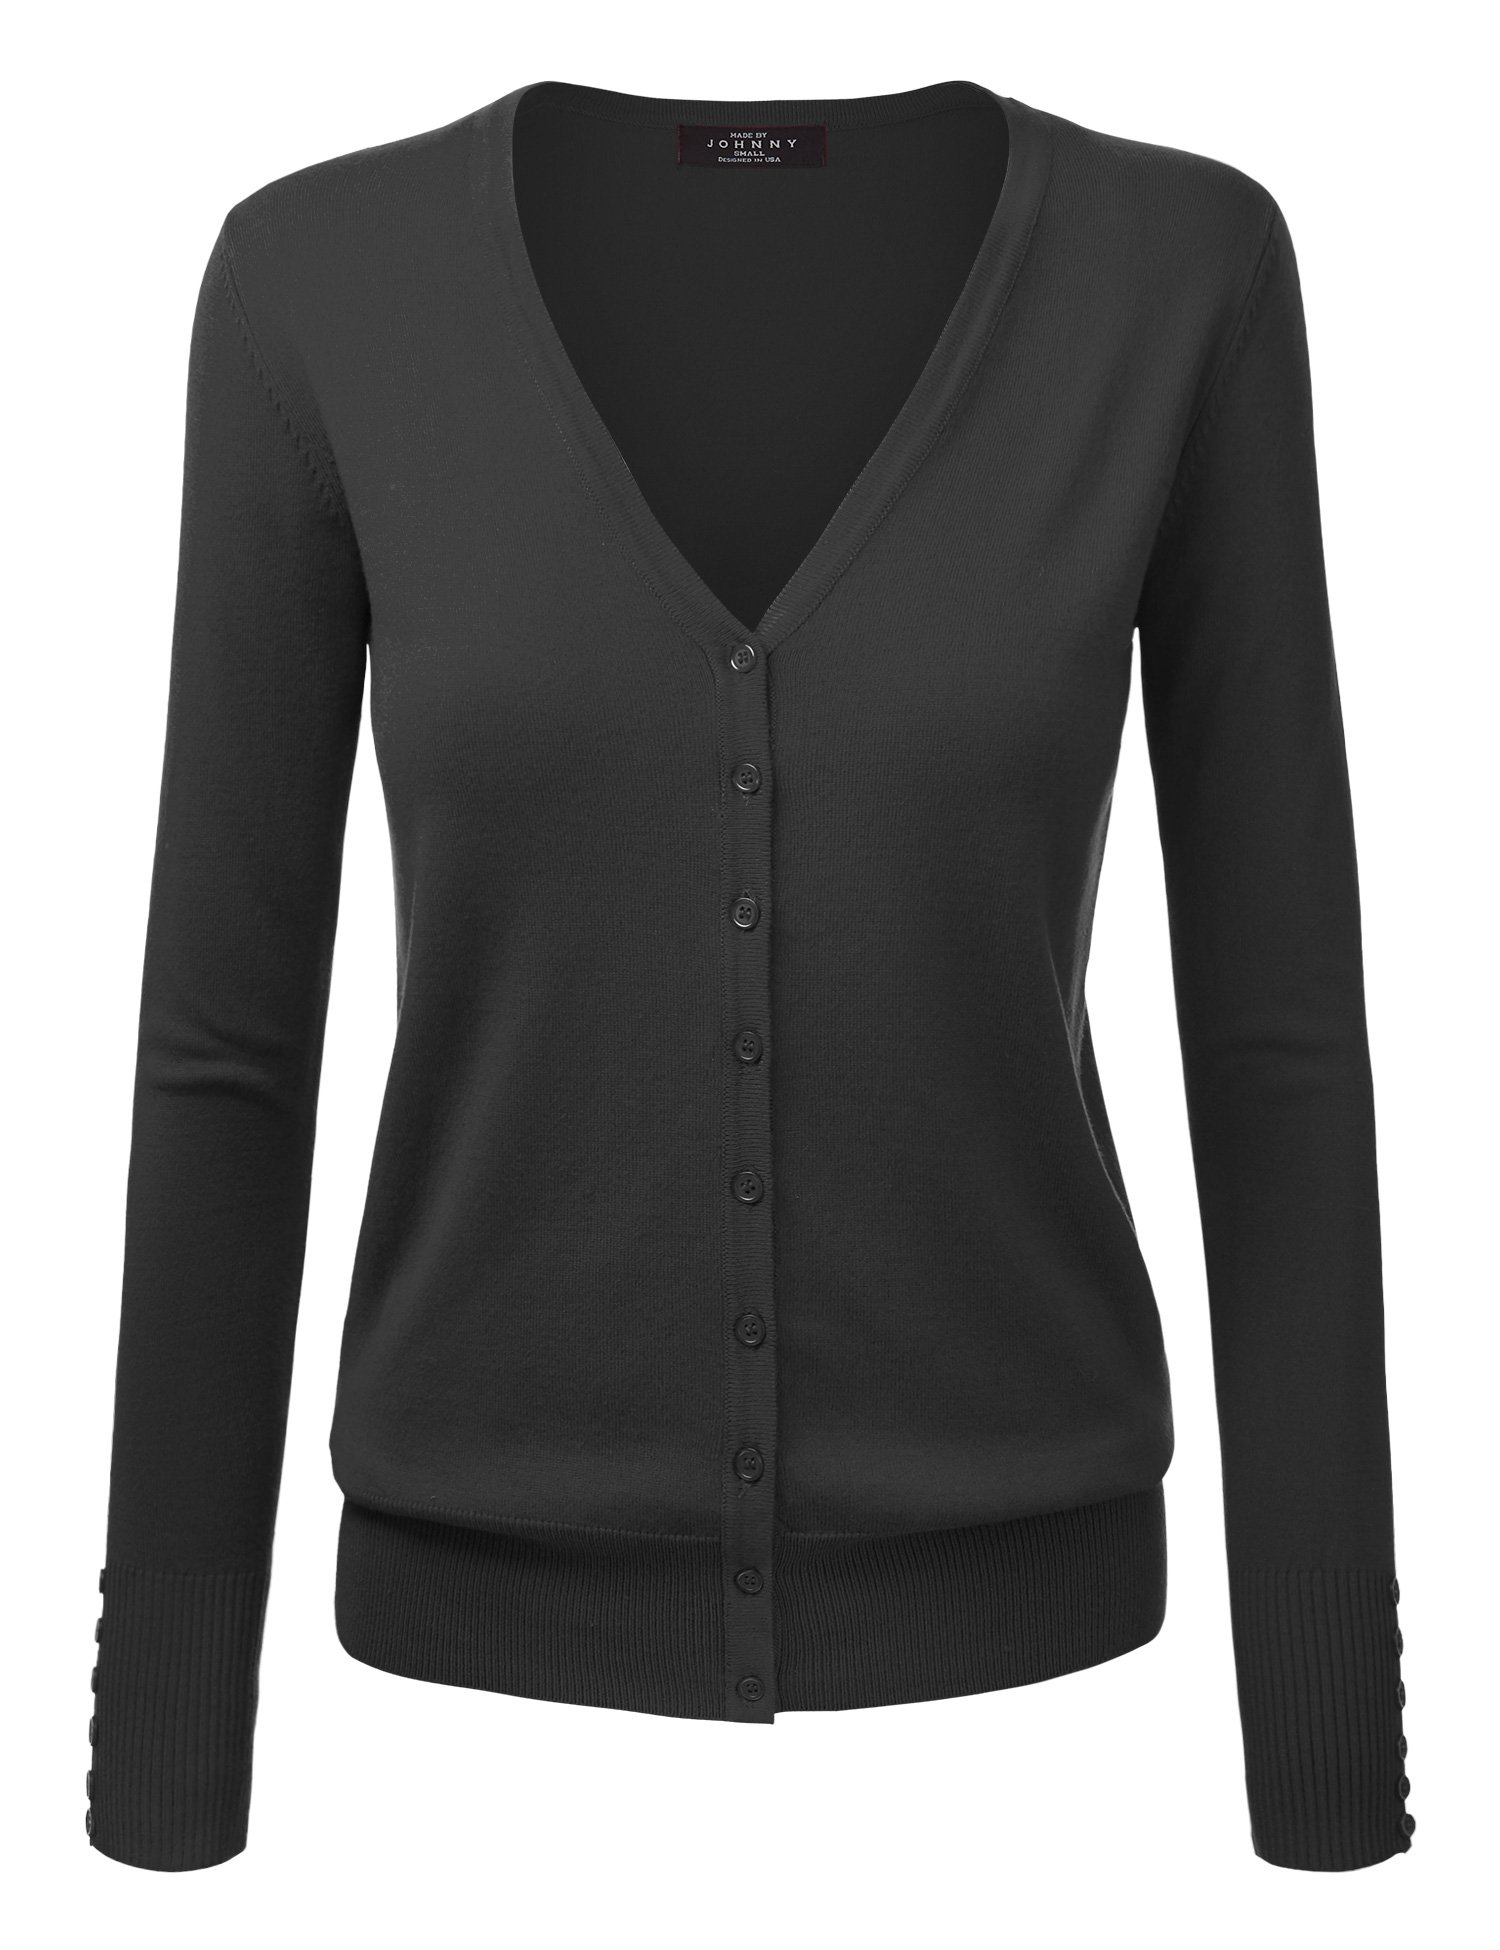 Made By Johnny WSK780 Womens Keep It Classic V Neck Cardigan M BLACK